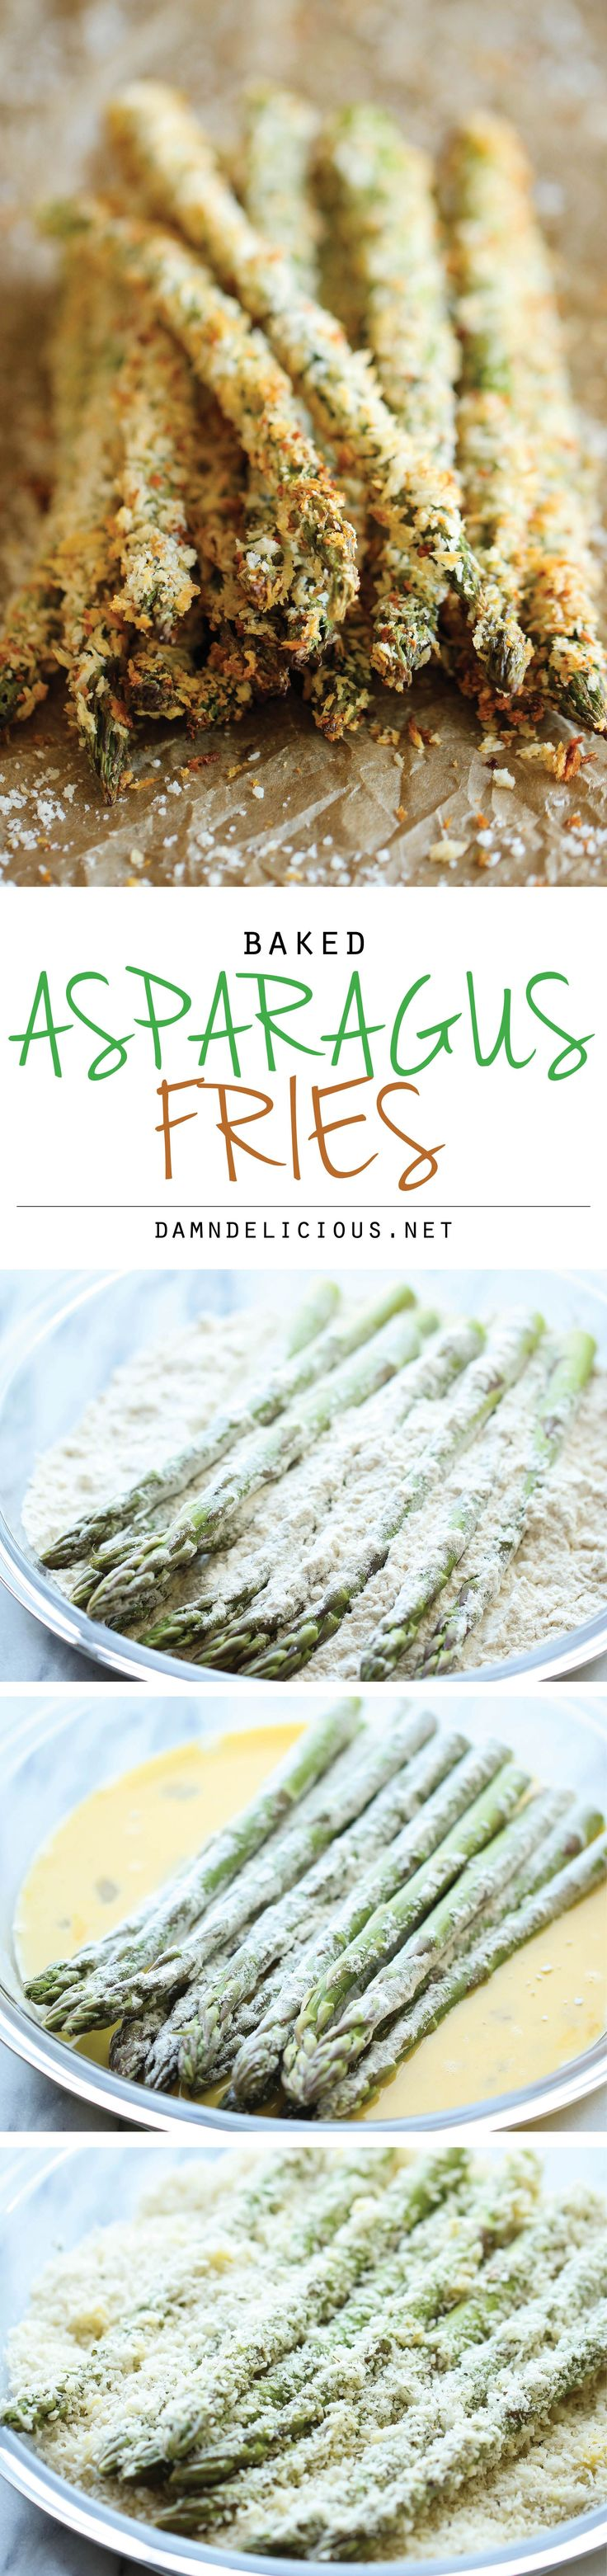 Baked Asparagus Fries - A healthy alternative to french fries baked to crisp perfection right in the oven! #Vegetarianfood